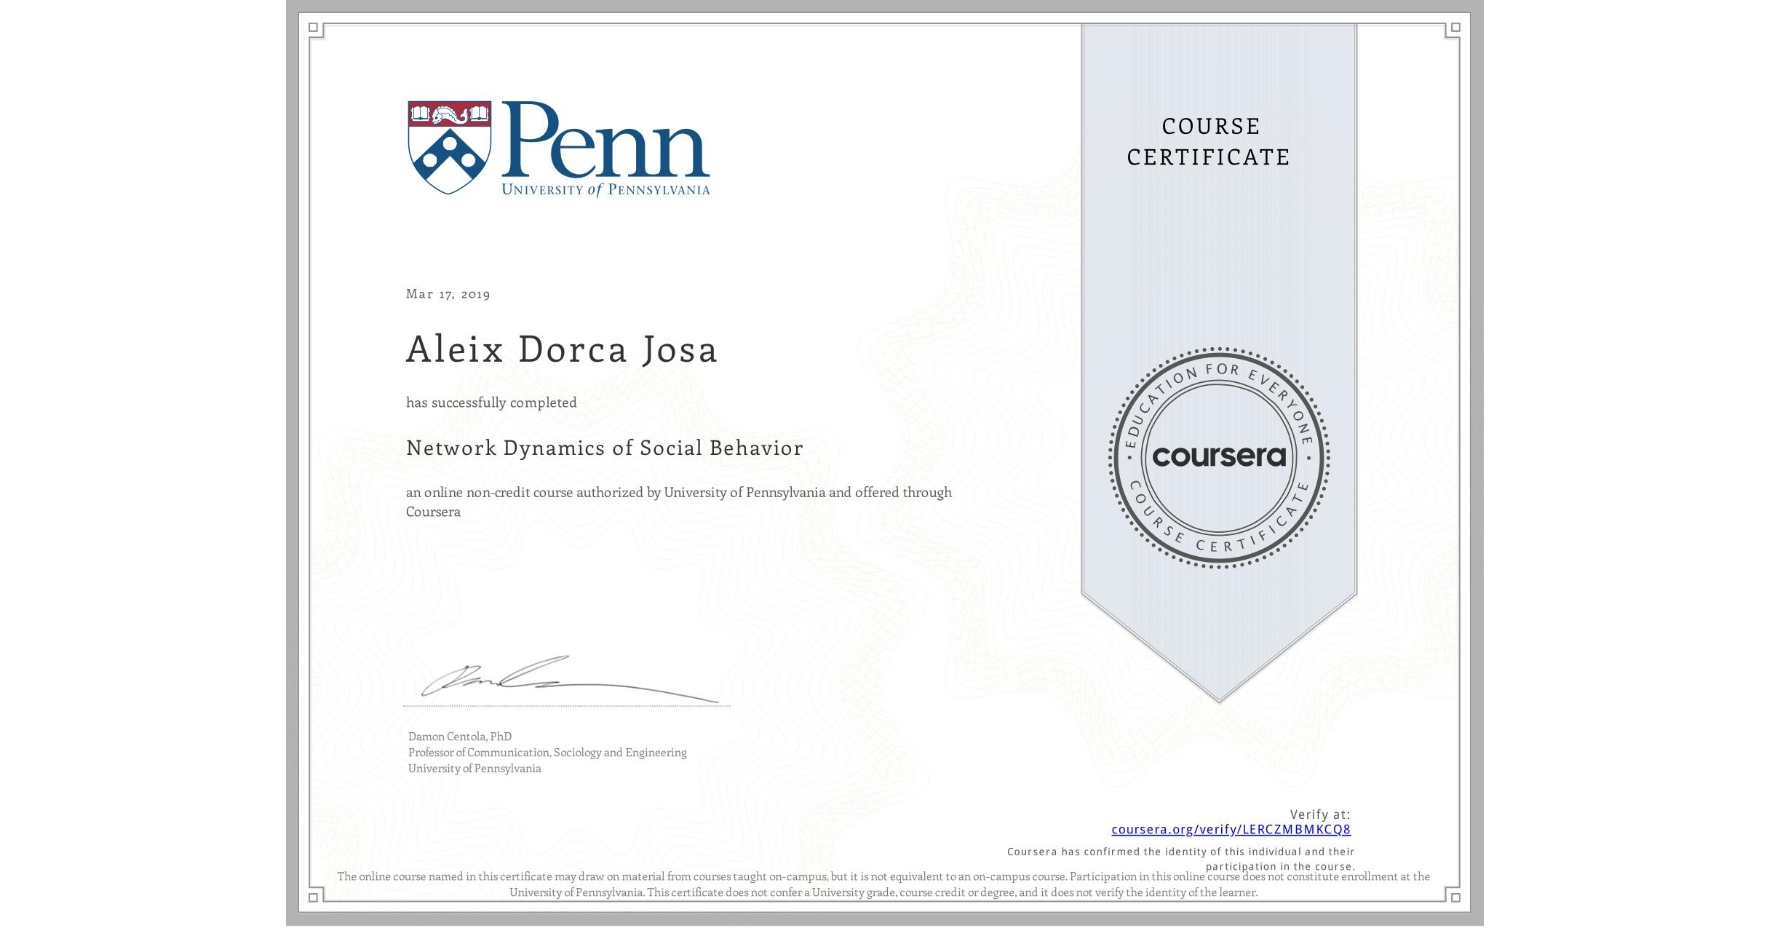 View certificate for Aleix Dorca Josa, Network Dynamics of Social Behavior, an online non-credit course authorized by University of Pennsylvania and offered through Coursera